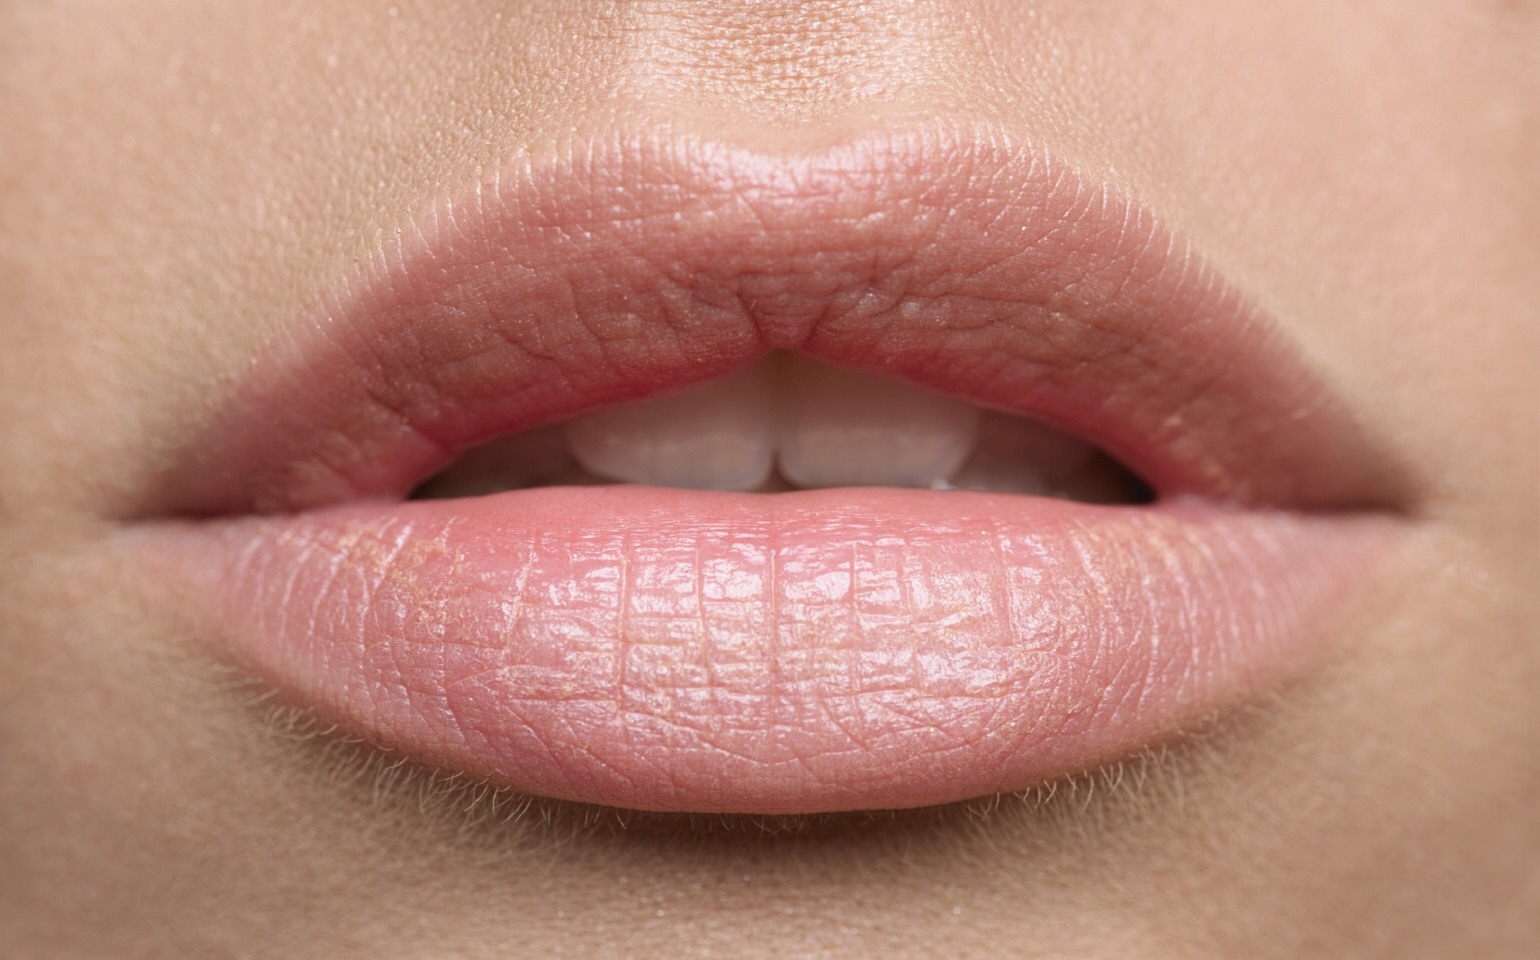 2- put Vaseline on your lips before bed or anytime of the day to make your lips super soft!